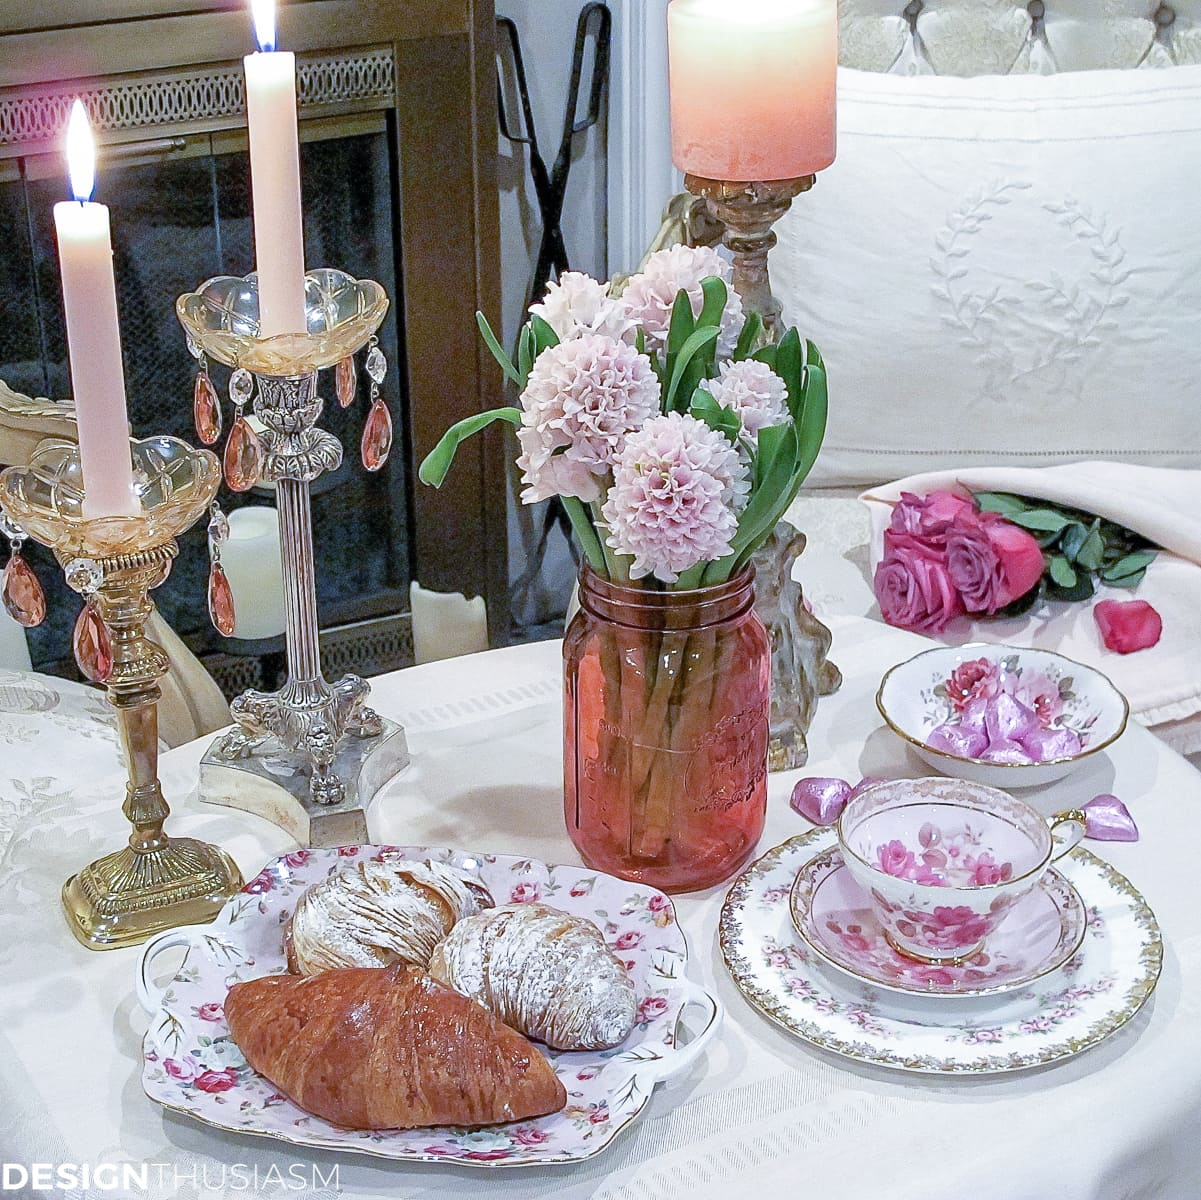 Table for Two: A Romantic Table Setting for Valentine's Day | Designthusiasm.com